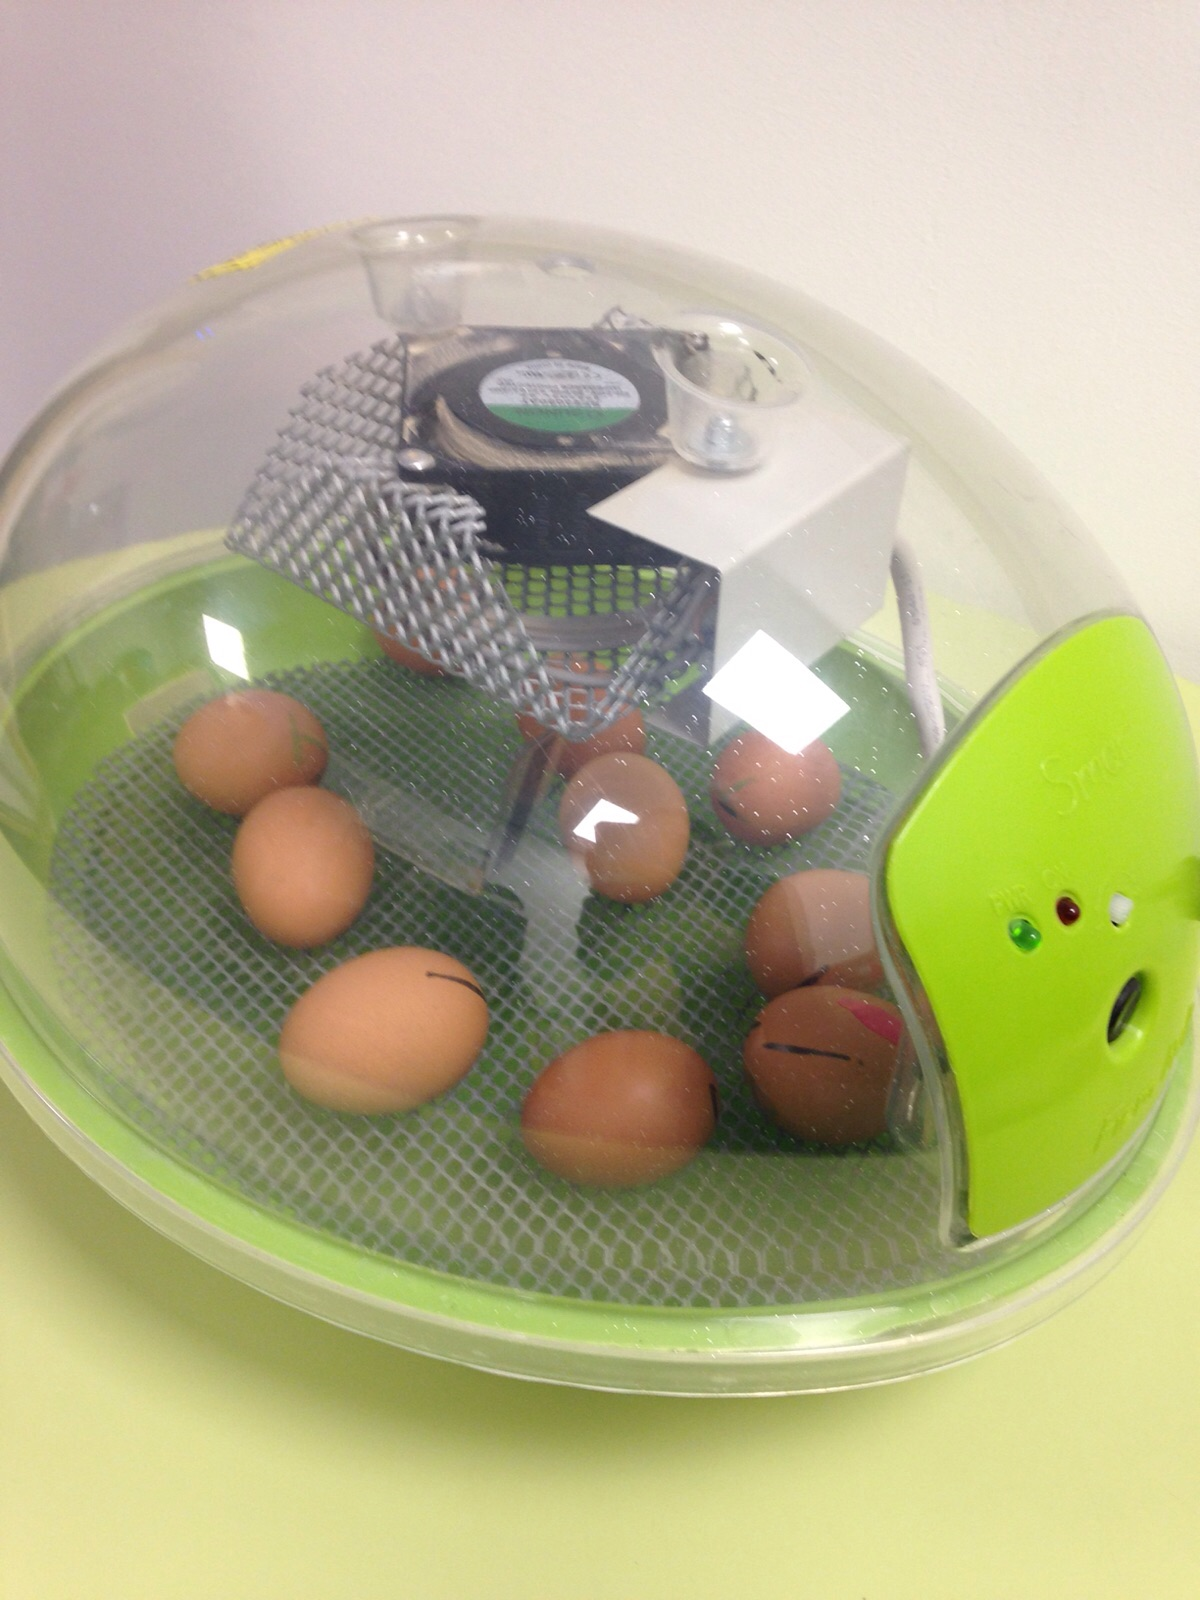 The incubator with our Eggs 2-3 days away from hatching :-)